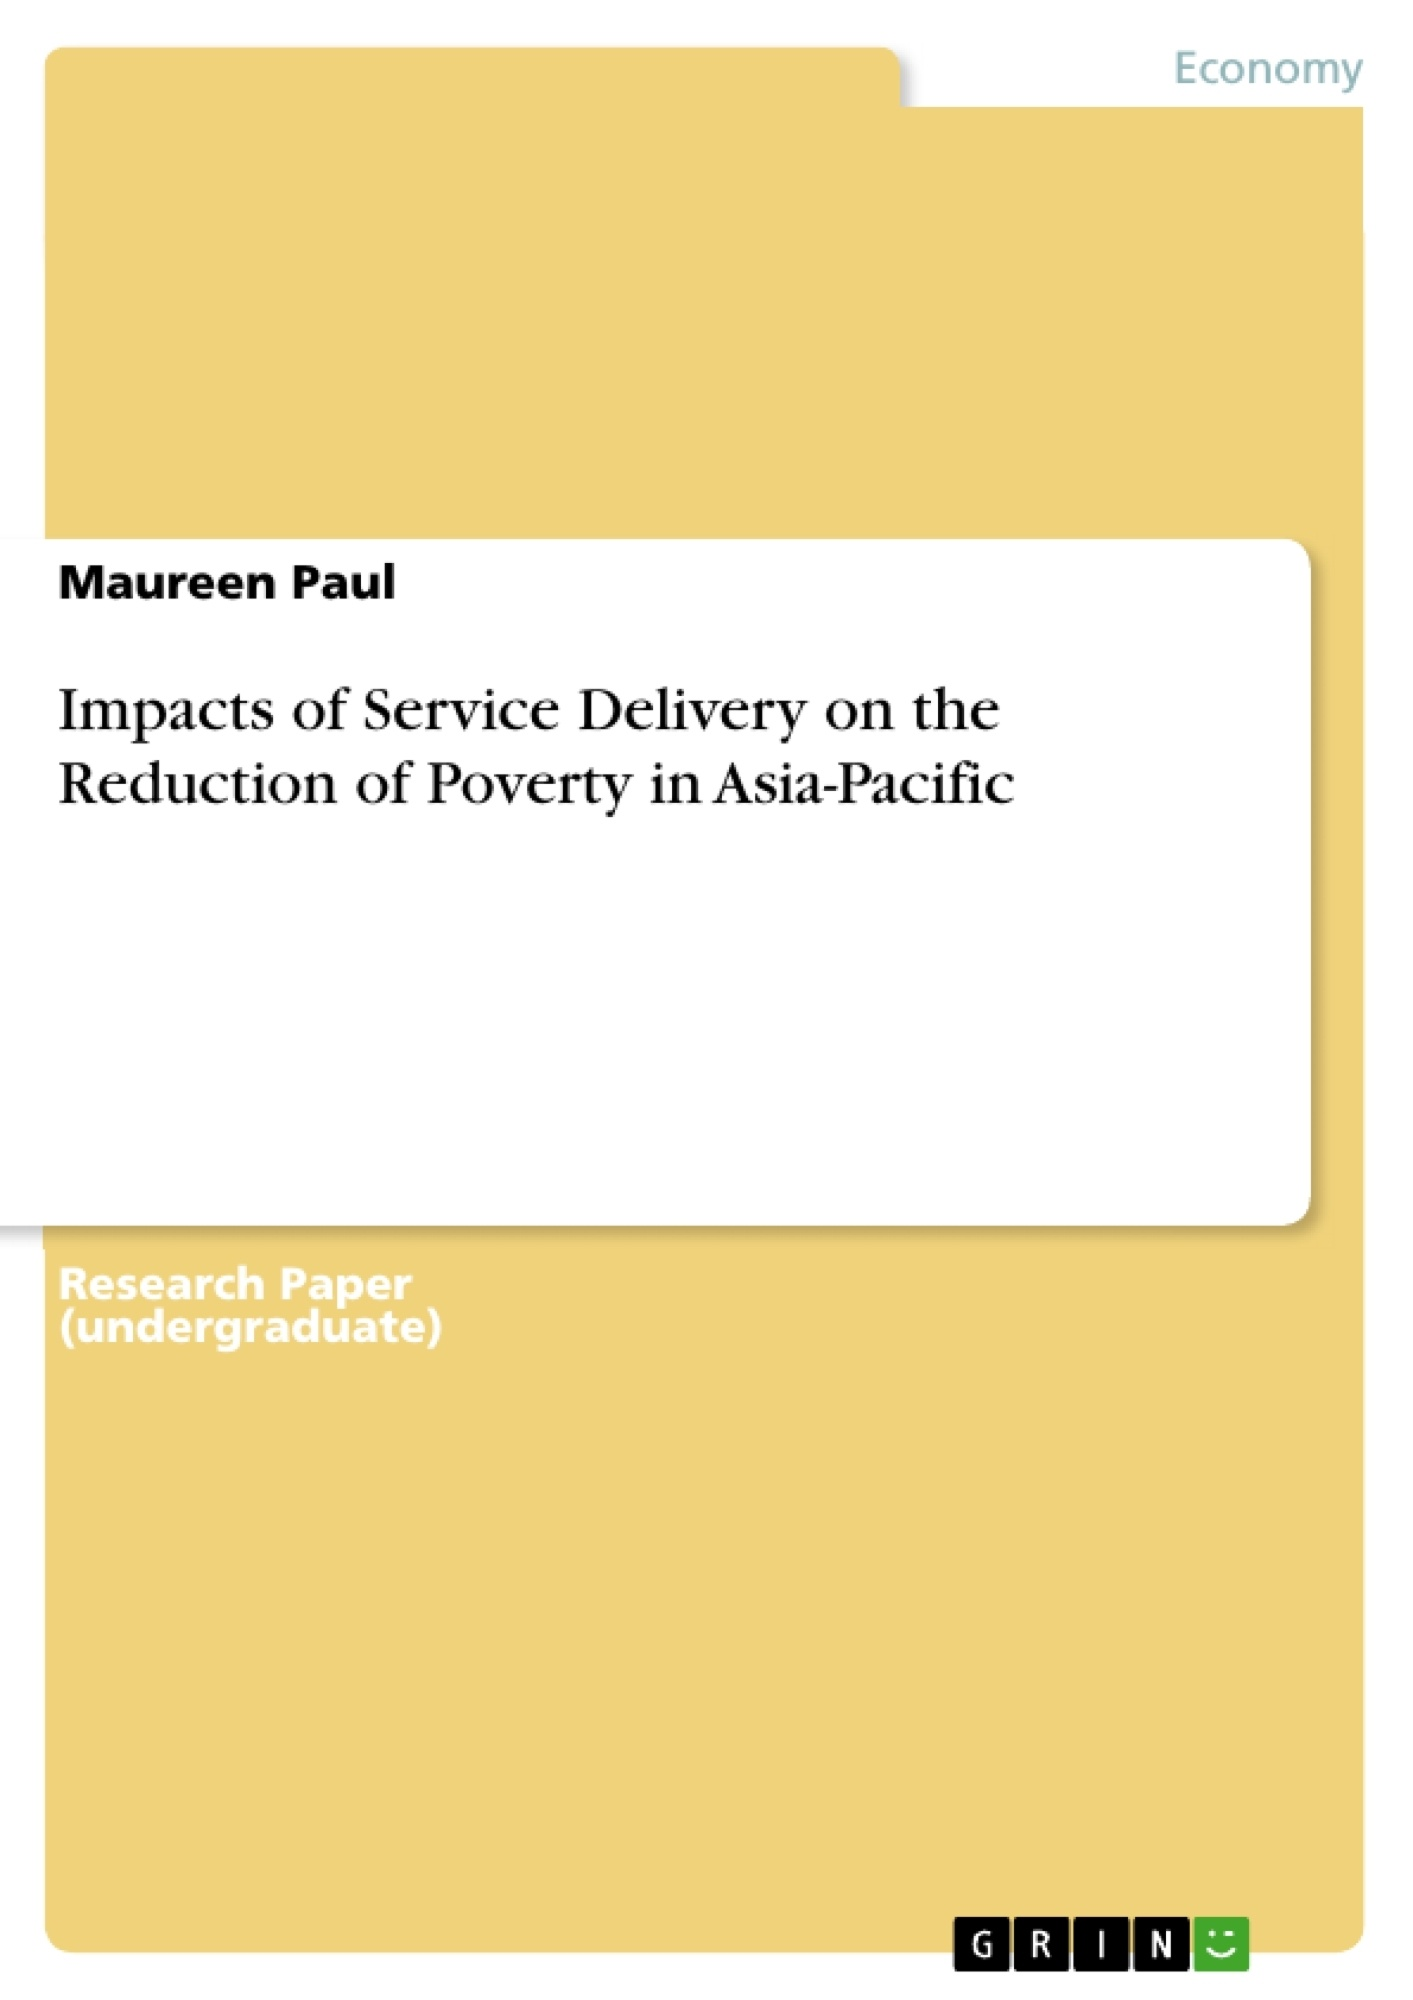 Title: Impacts of Service Delivery on the Reduction of Poverty in Asia-Pacific